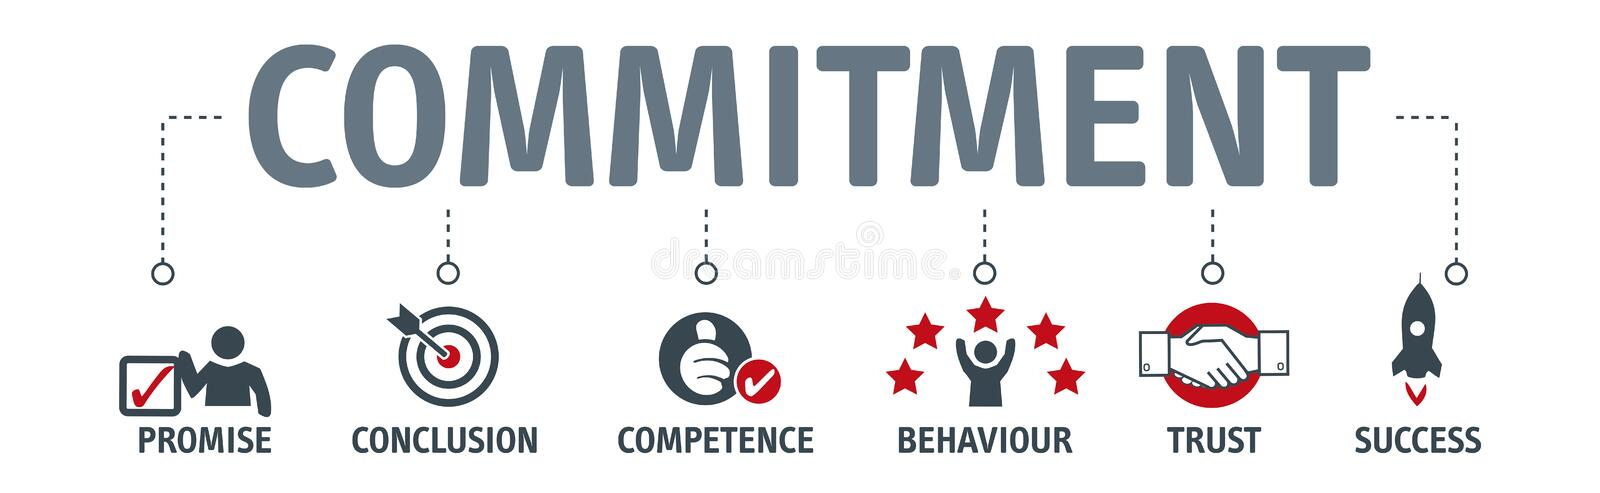 Commitment, trust and agreement concept stock illustration